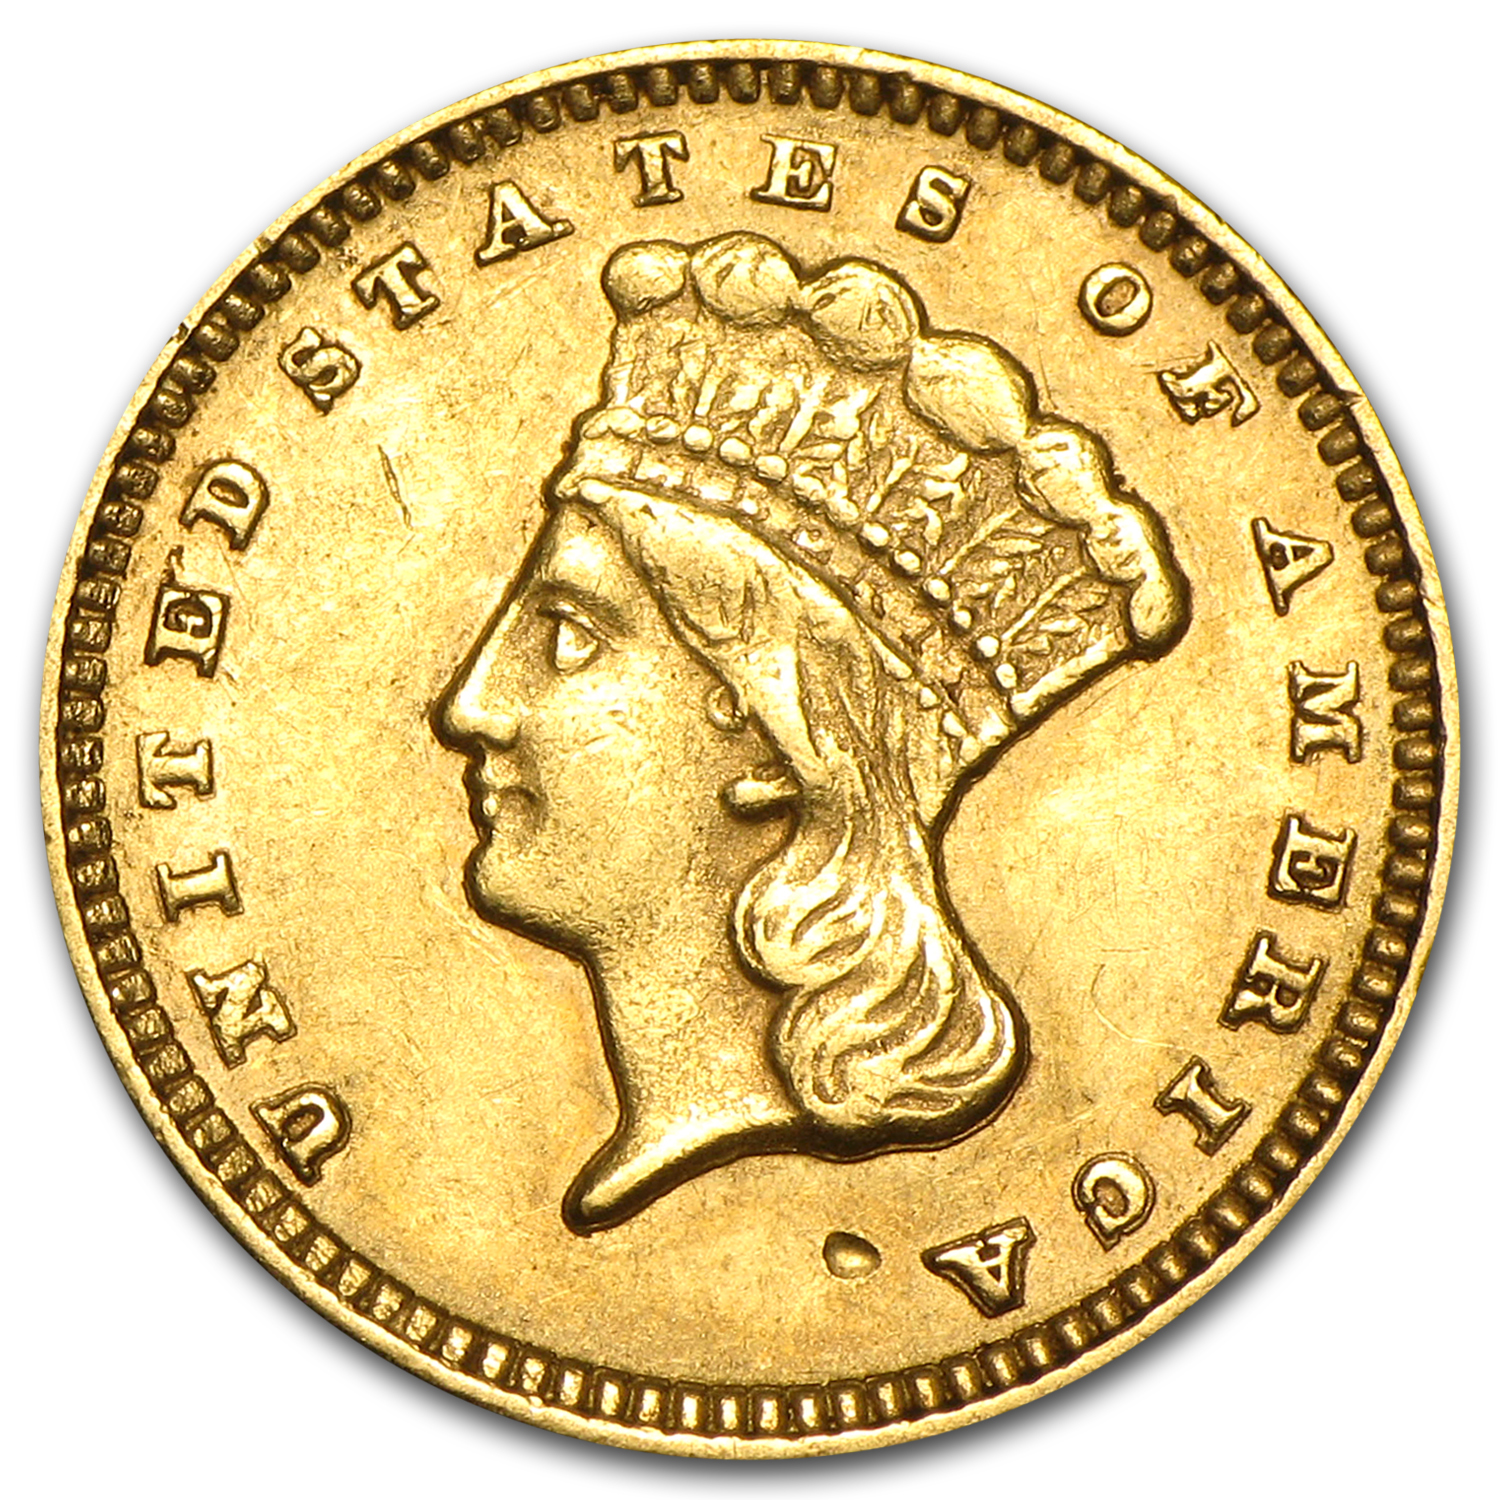 $1 Indian Head Gold - Type 3 - Extra Fine